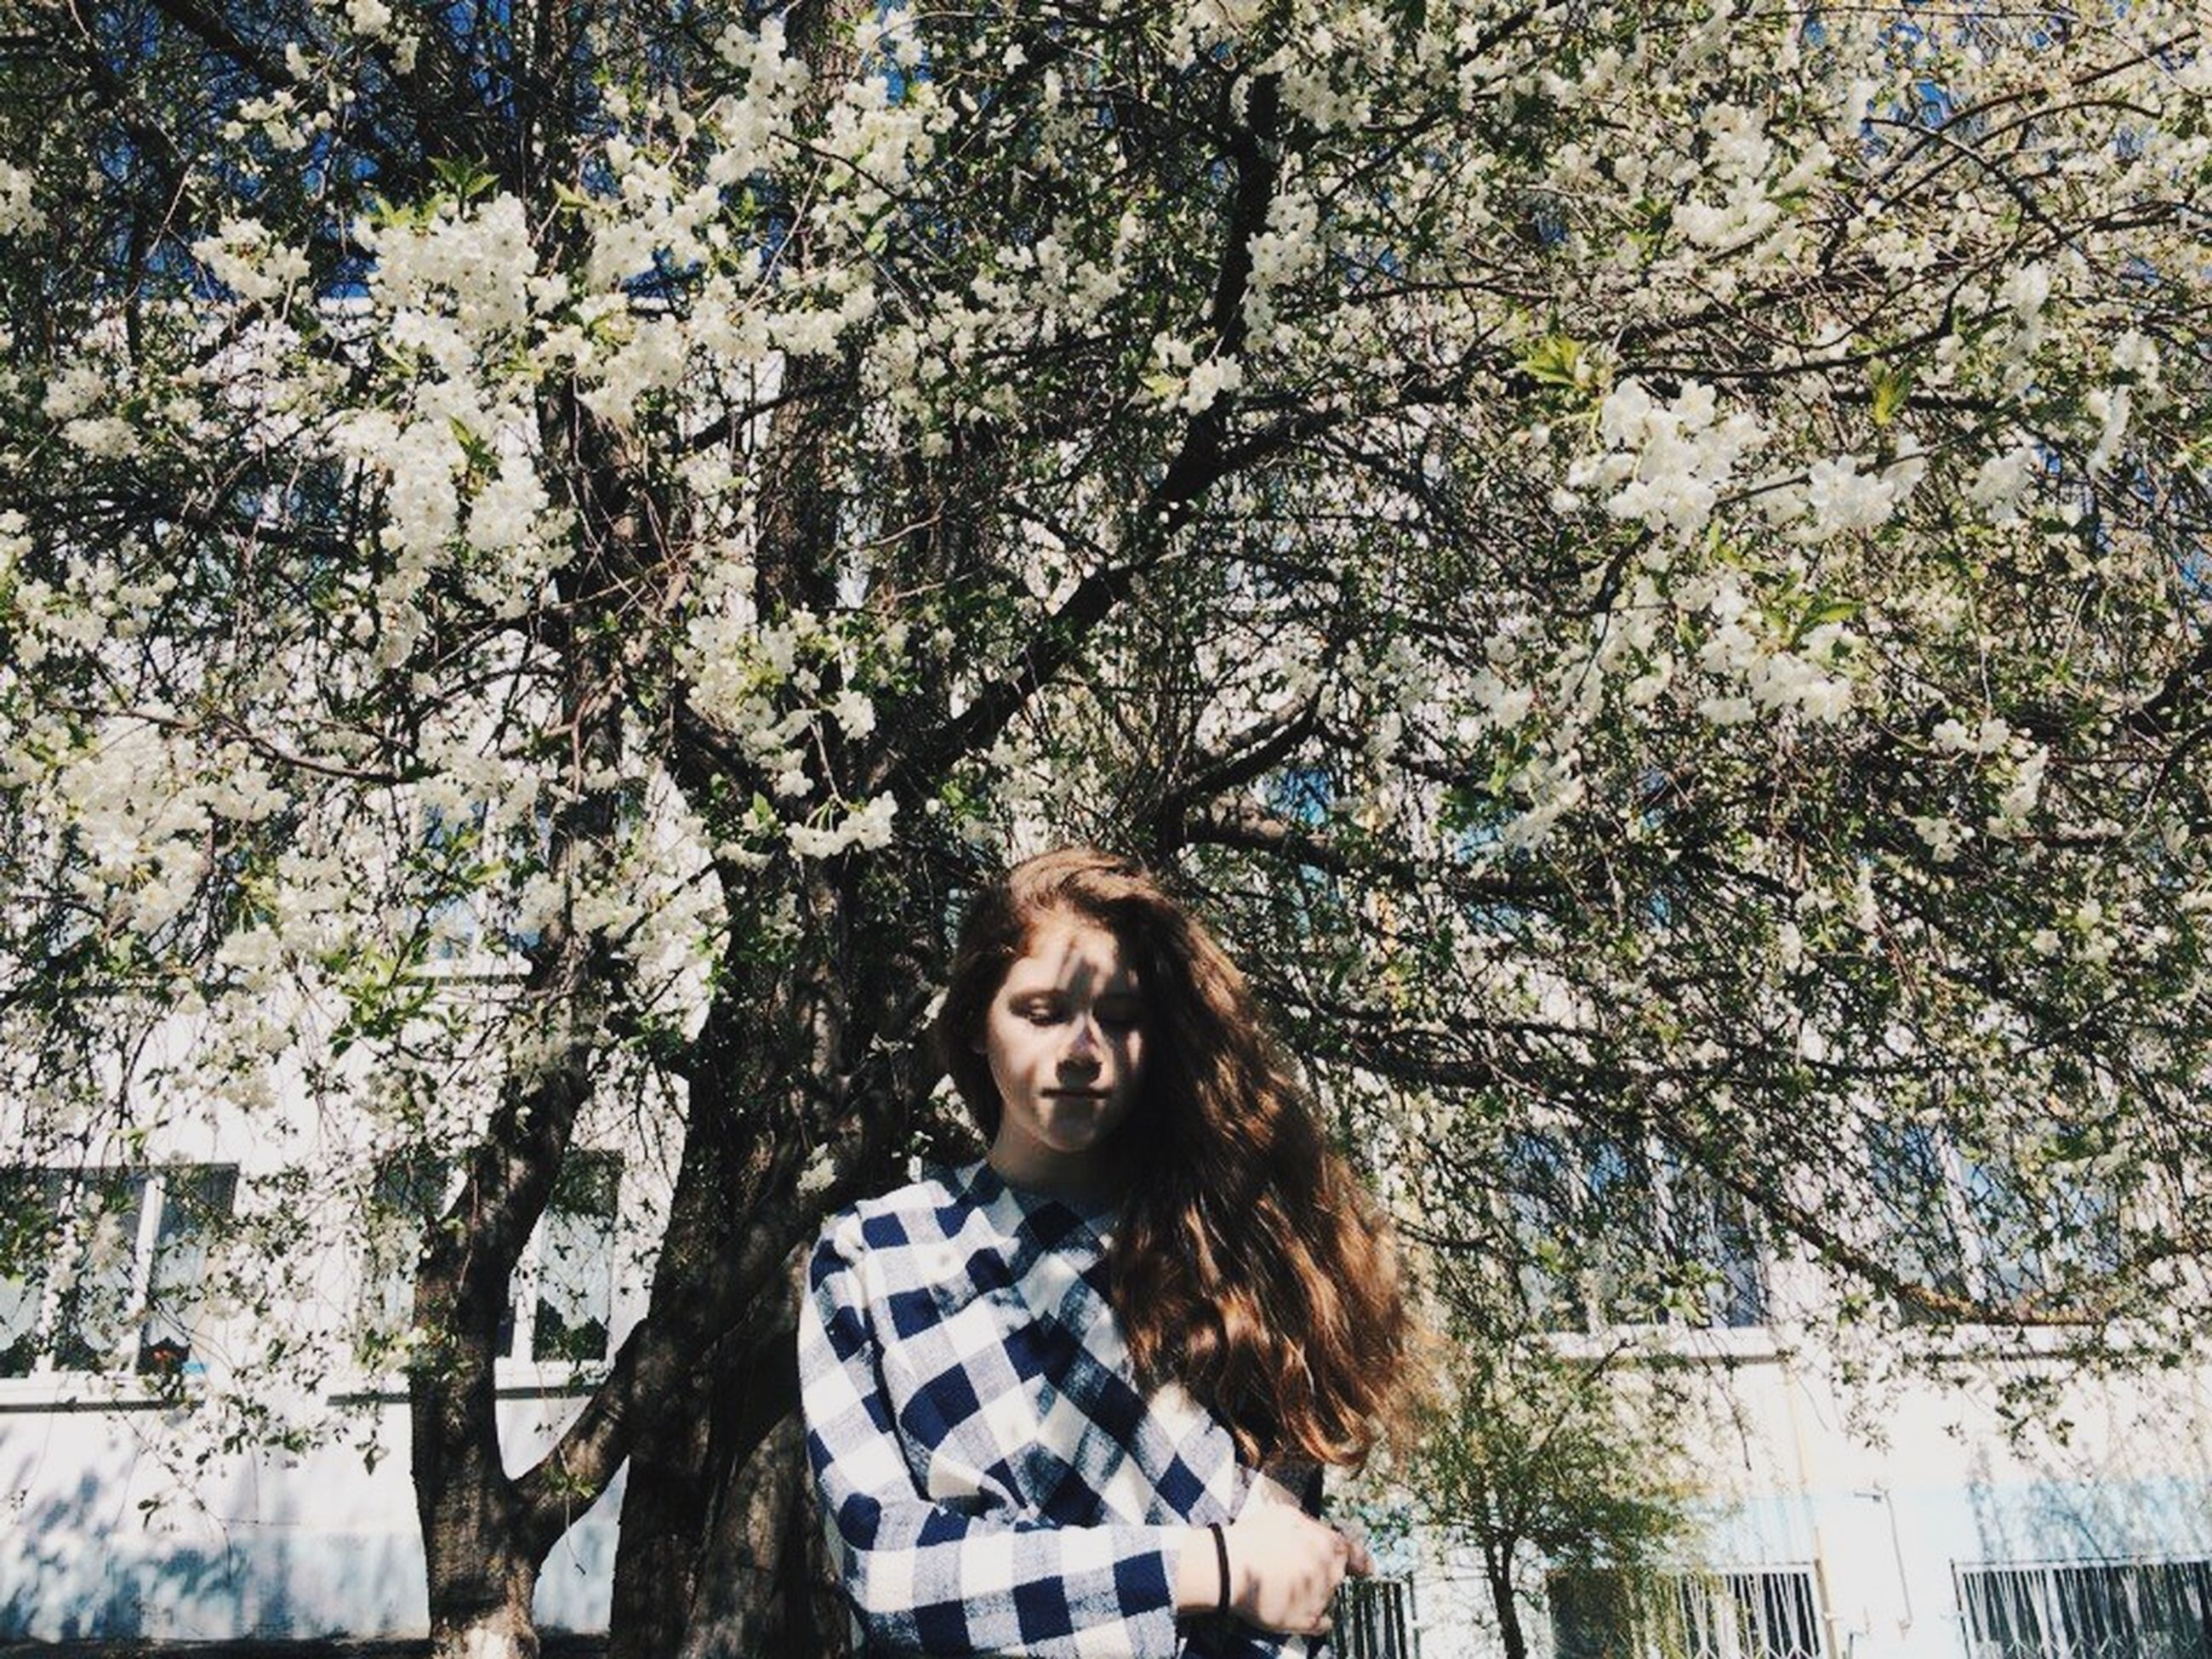 person, tree, young adult, lifestyles, looking at camera, portrait, casual clothing, leisure activity, smiling, young women, front view, standing, waist up, branch, happiness, day, nature, park - man made space